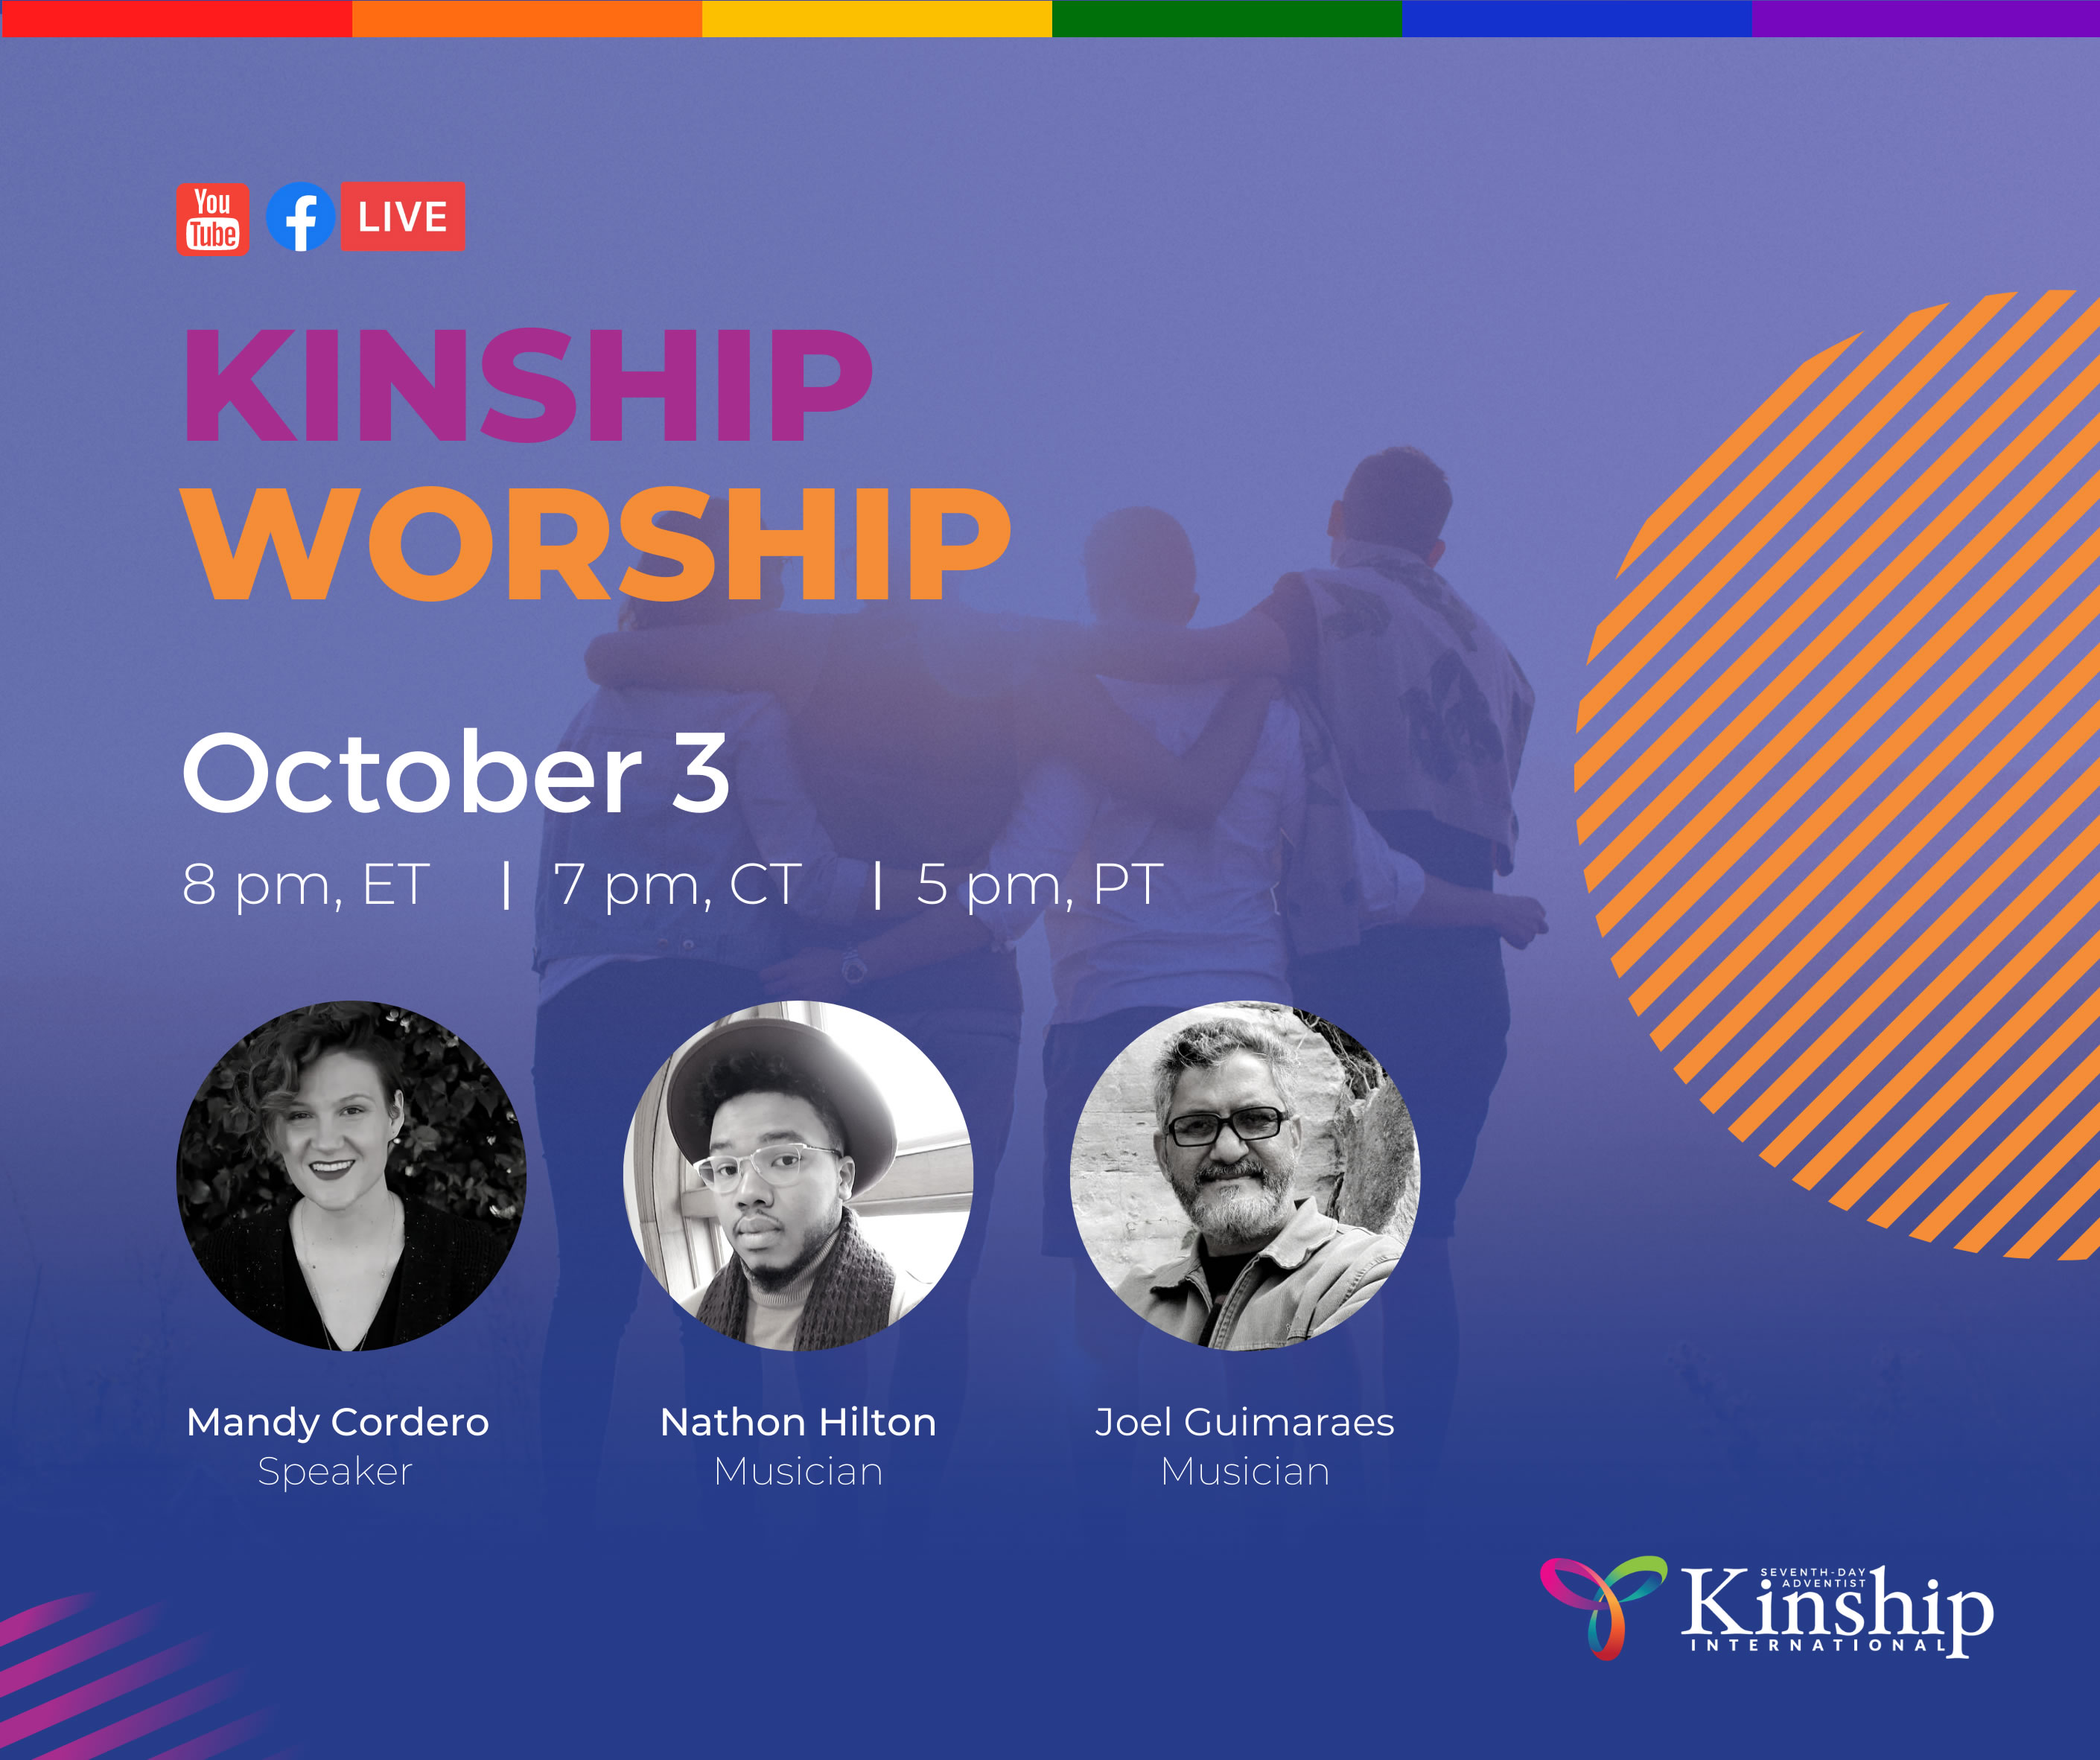 ENGLISH Kinship Events